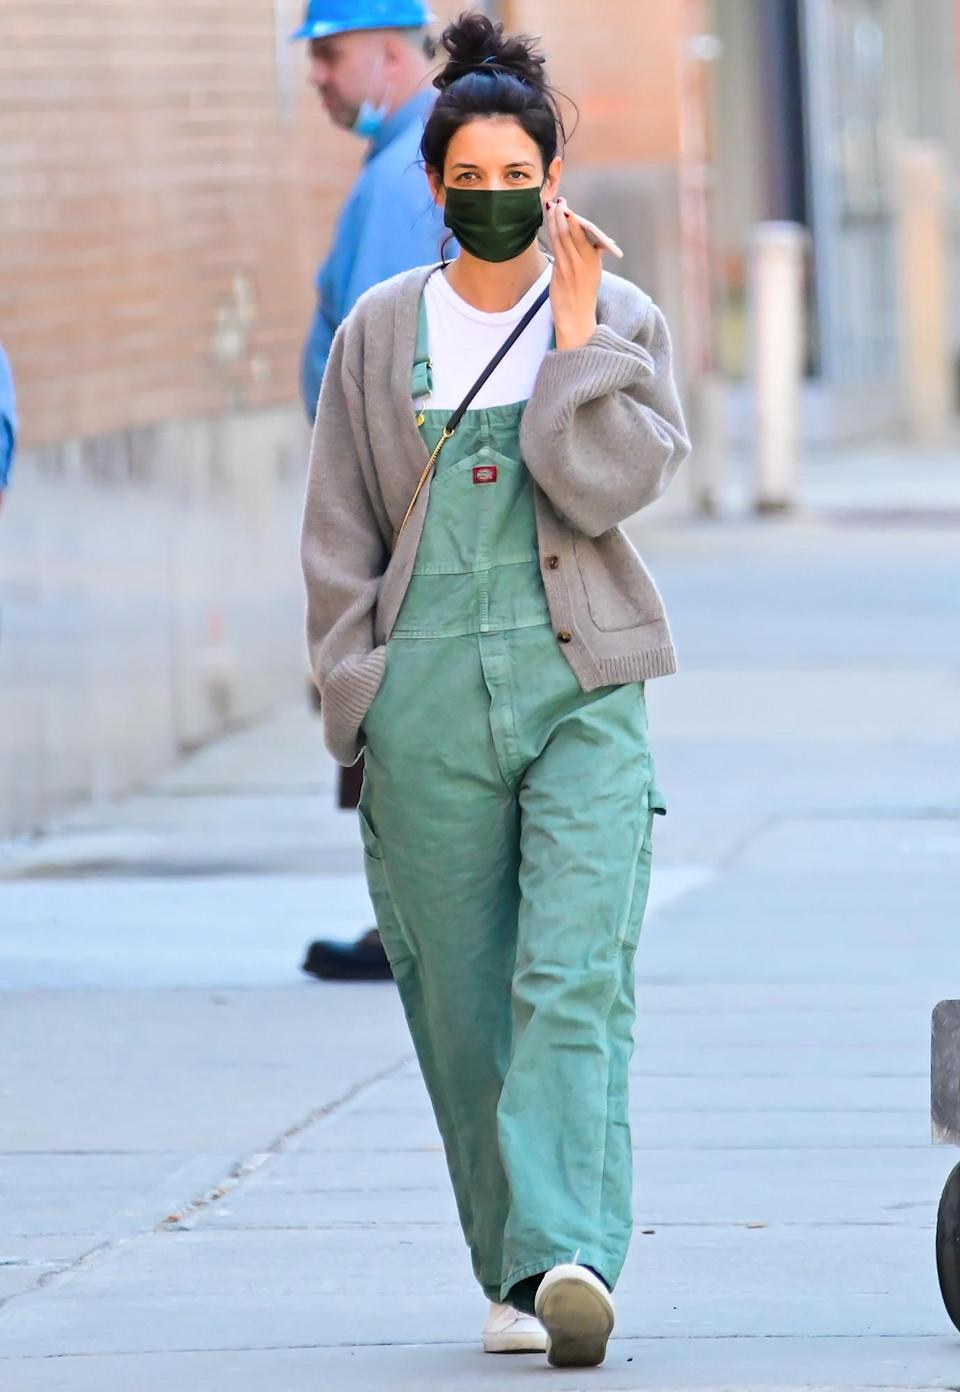 <p>Katie Holmes goes for a solo stroll wearing green overalls and a black mask on Thursday in N.Y.C.</p>